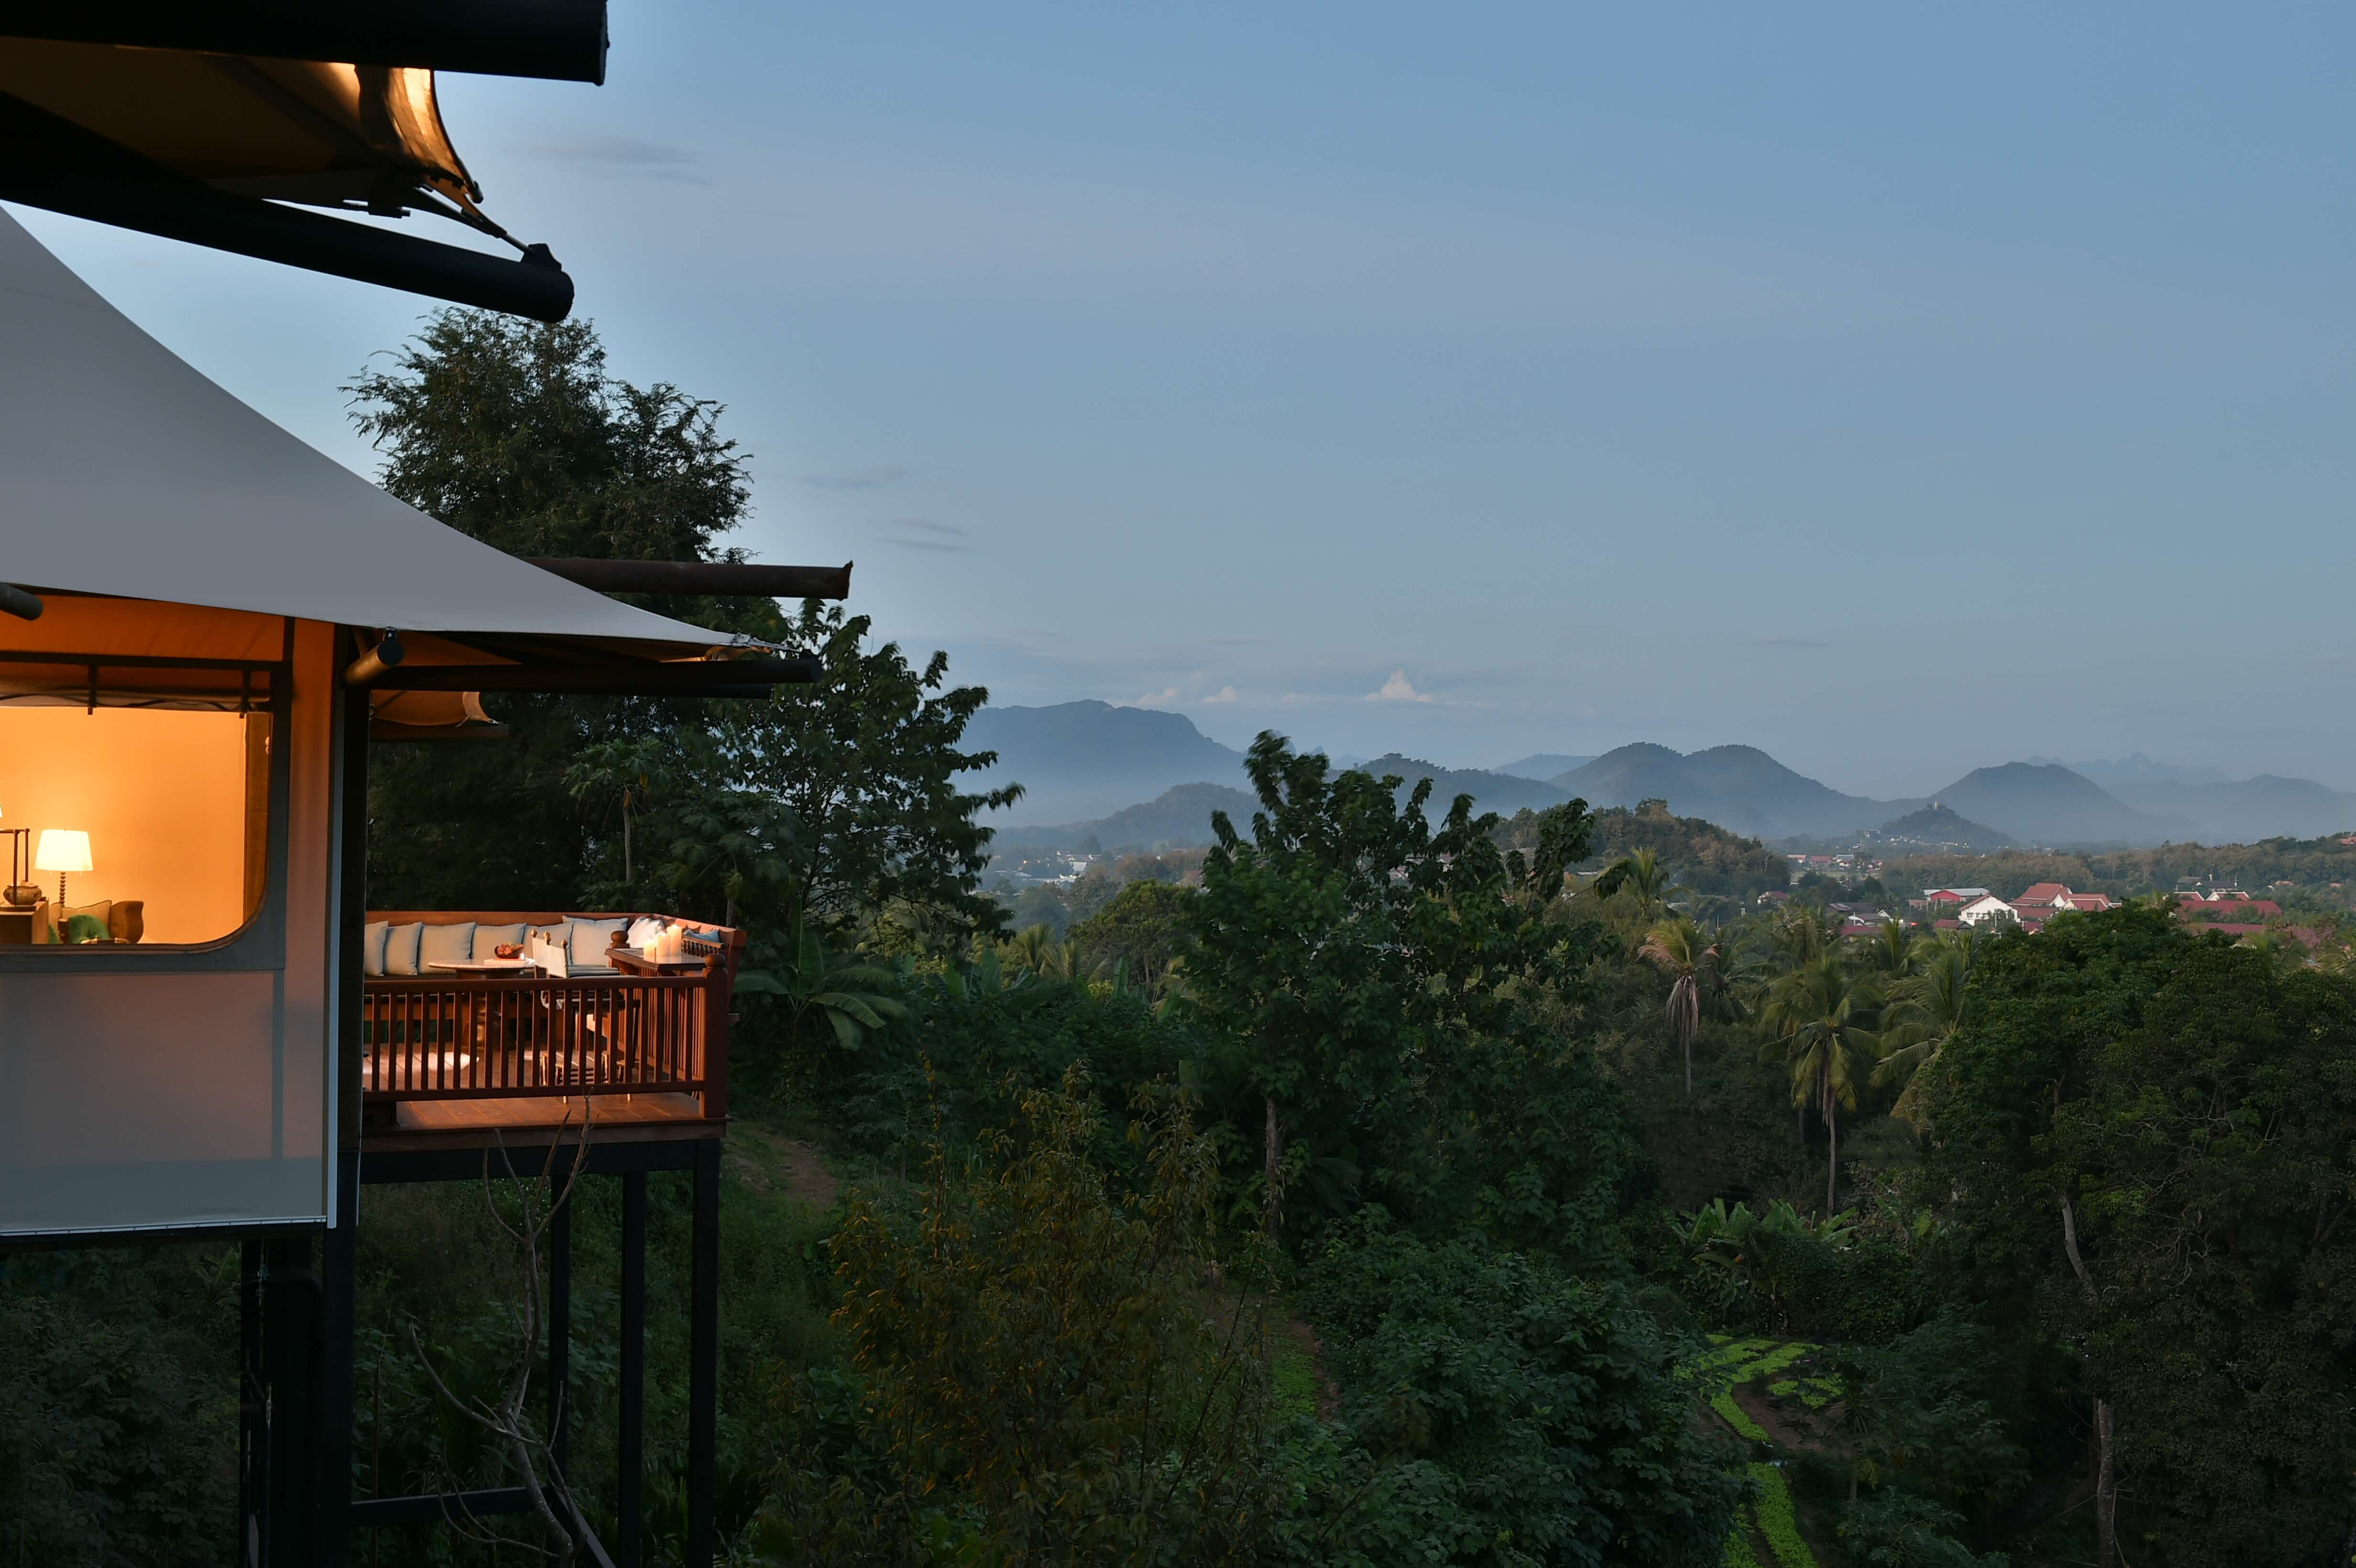 Special Introductory Offer: 'Ancient Wonders of Laos' at Rosewood's New Luxury Tented Villas